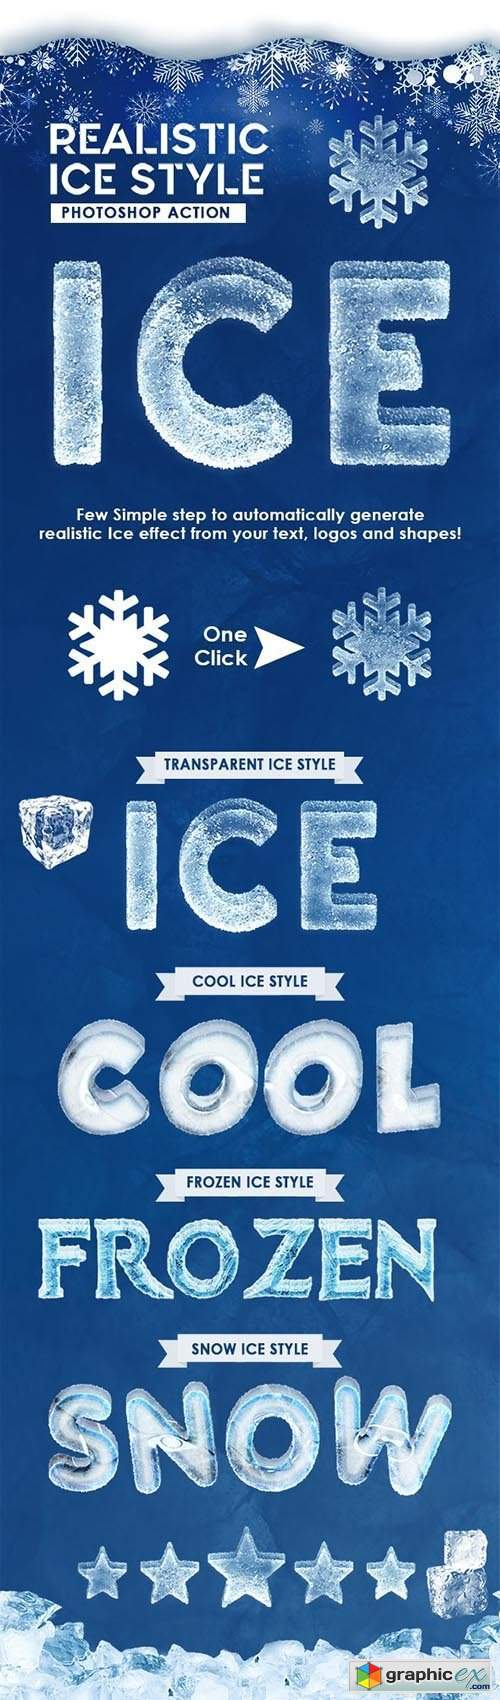 Realistic Ice Style - Photoshop Actions